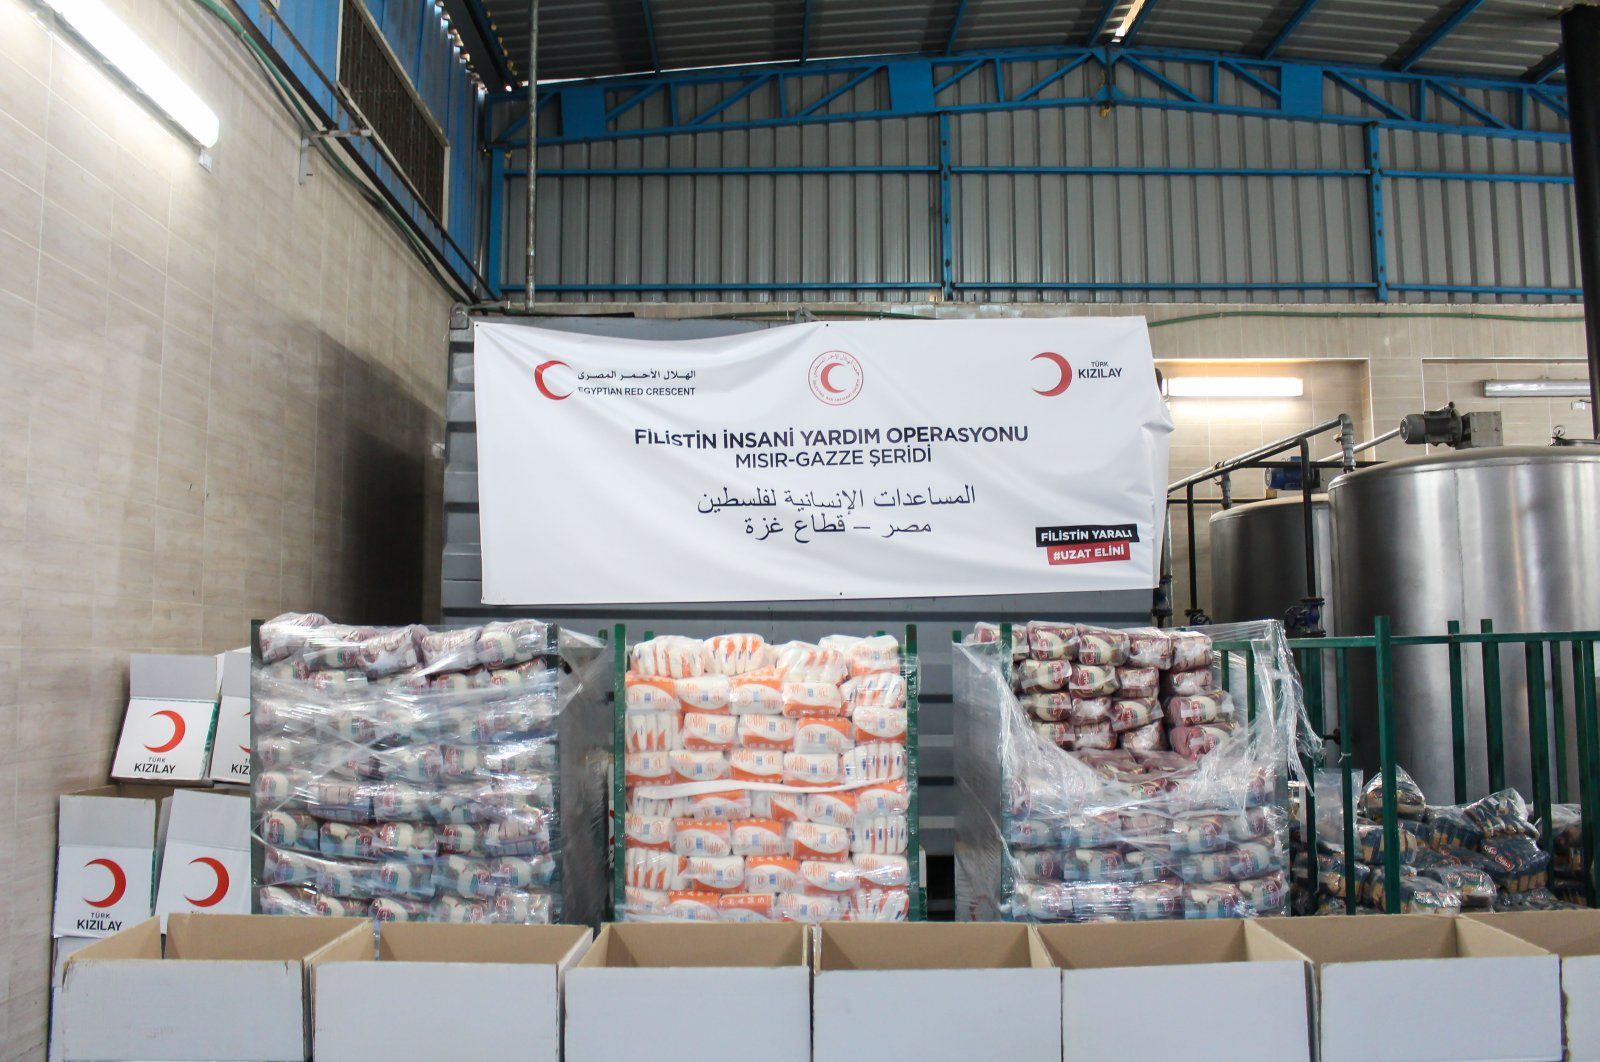 Aid packages prepared by the Turkish Red Crescent (Kızılay) are seen in Cairo, Egypt, June 15, 2021. (AA Photo)